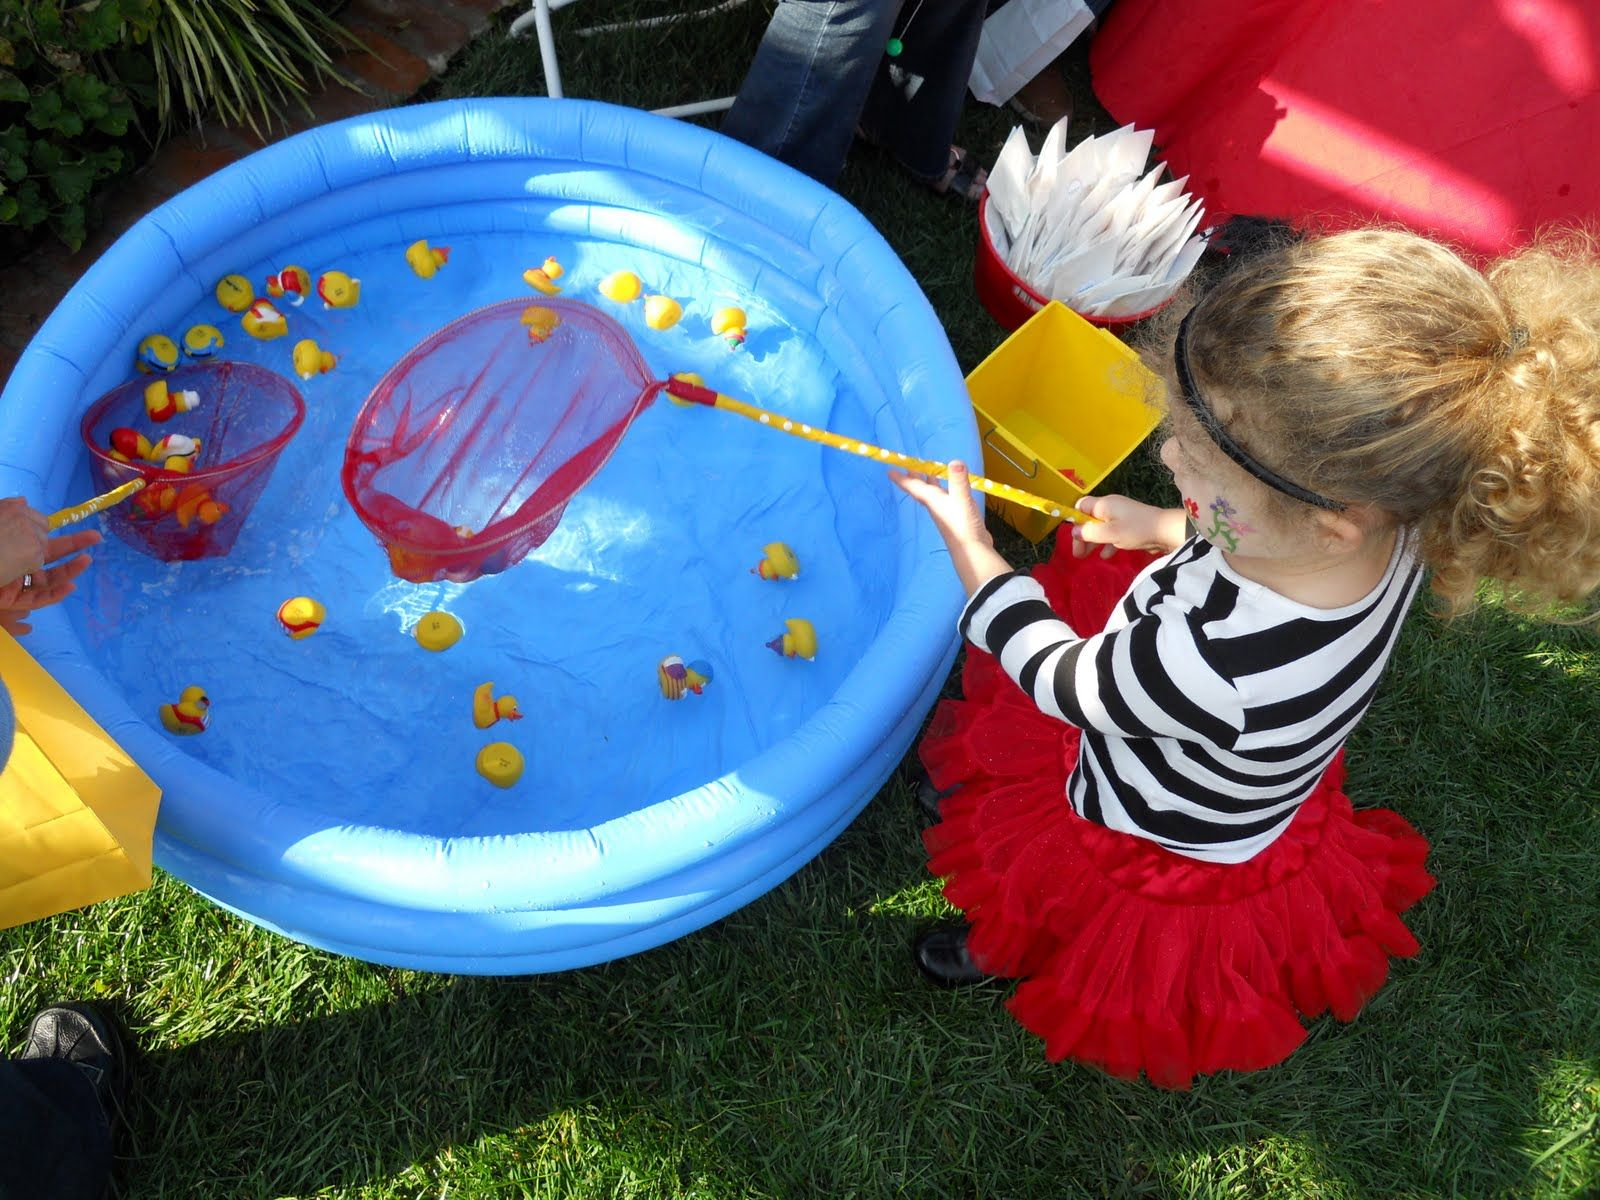 Scoop the ducks game early childhood education for Big fish in a small pond game